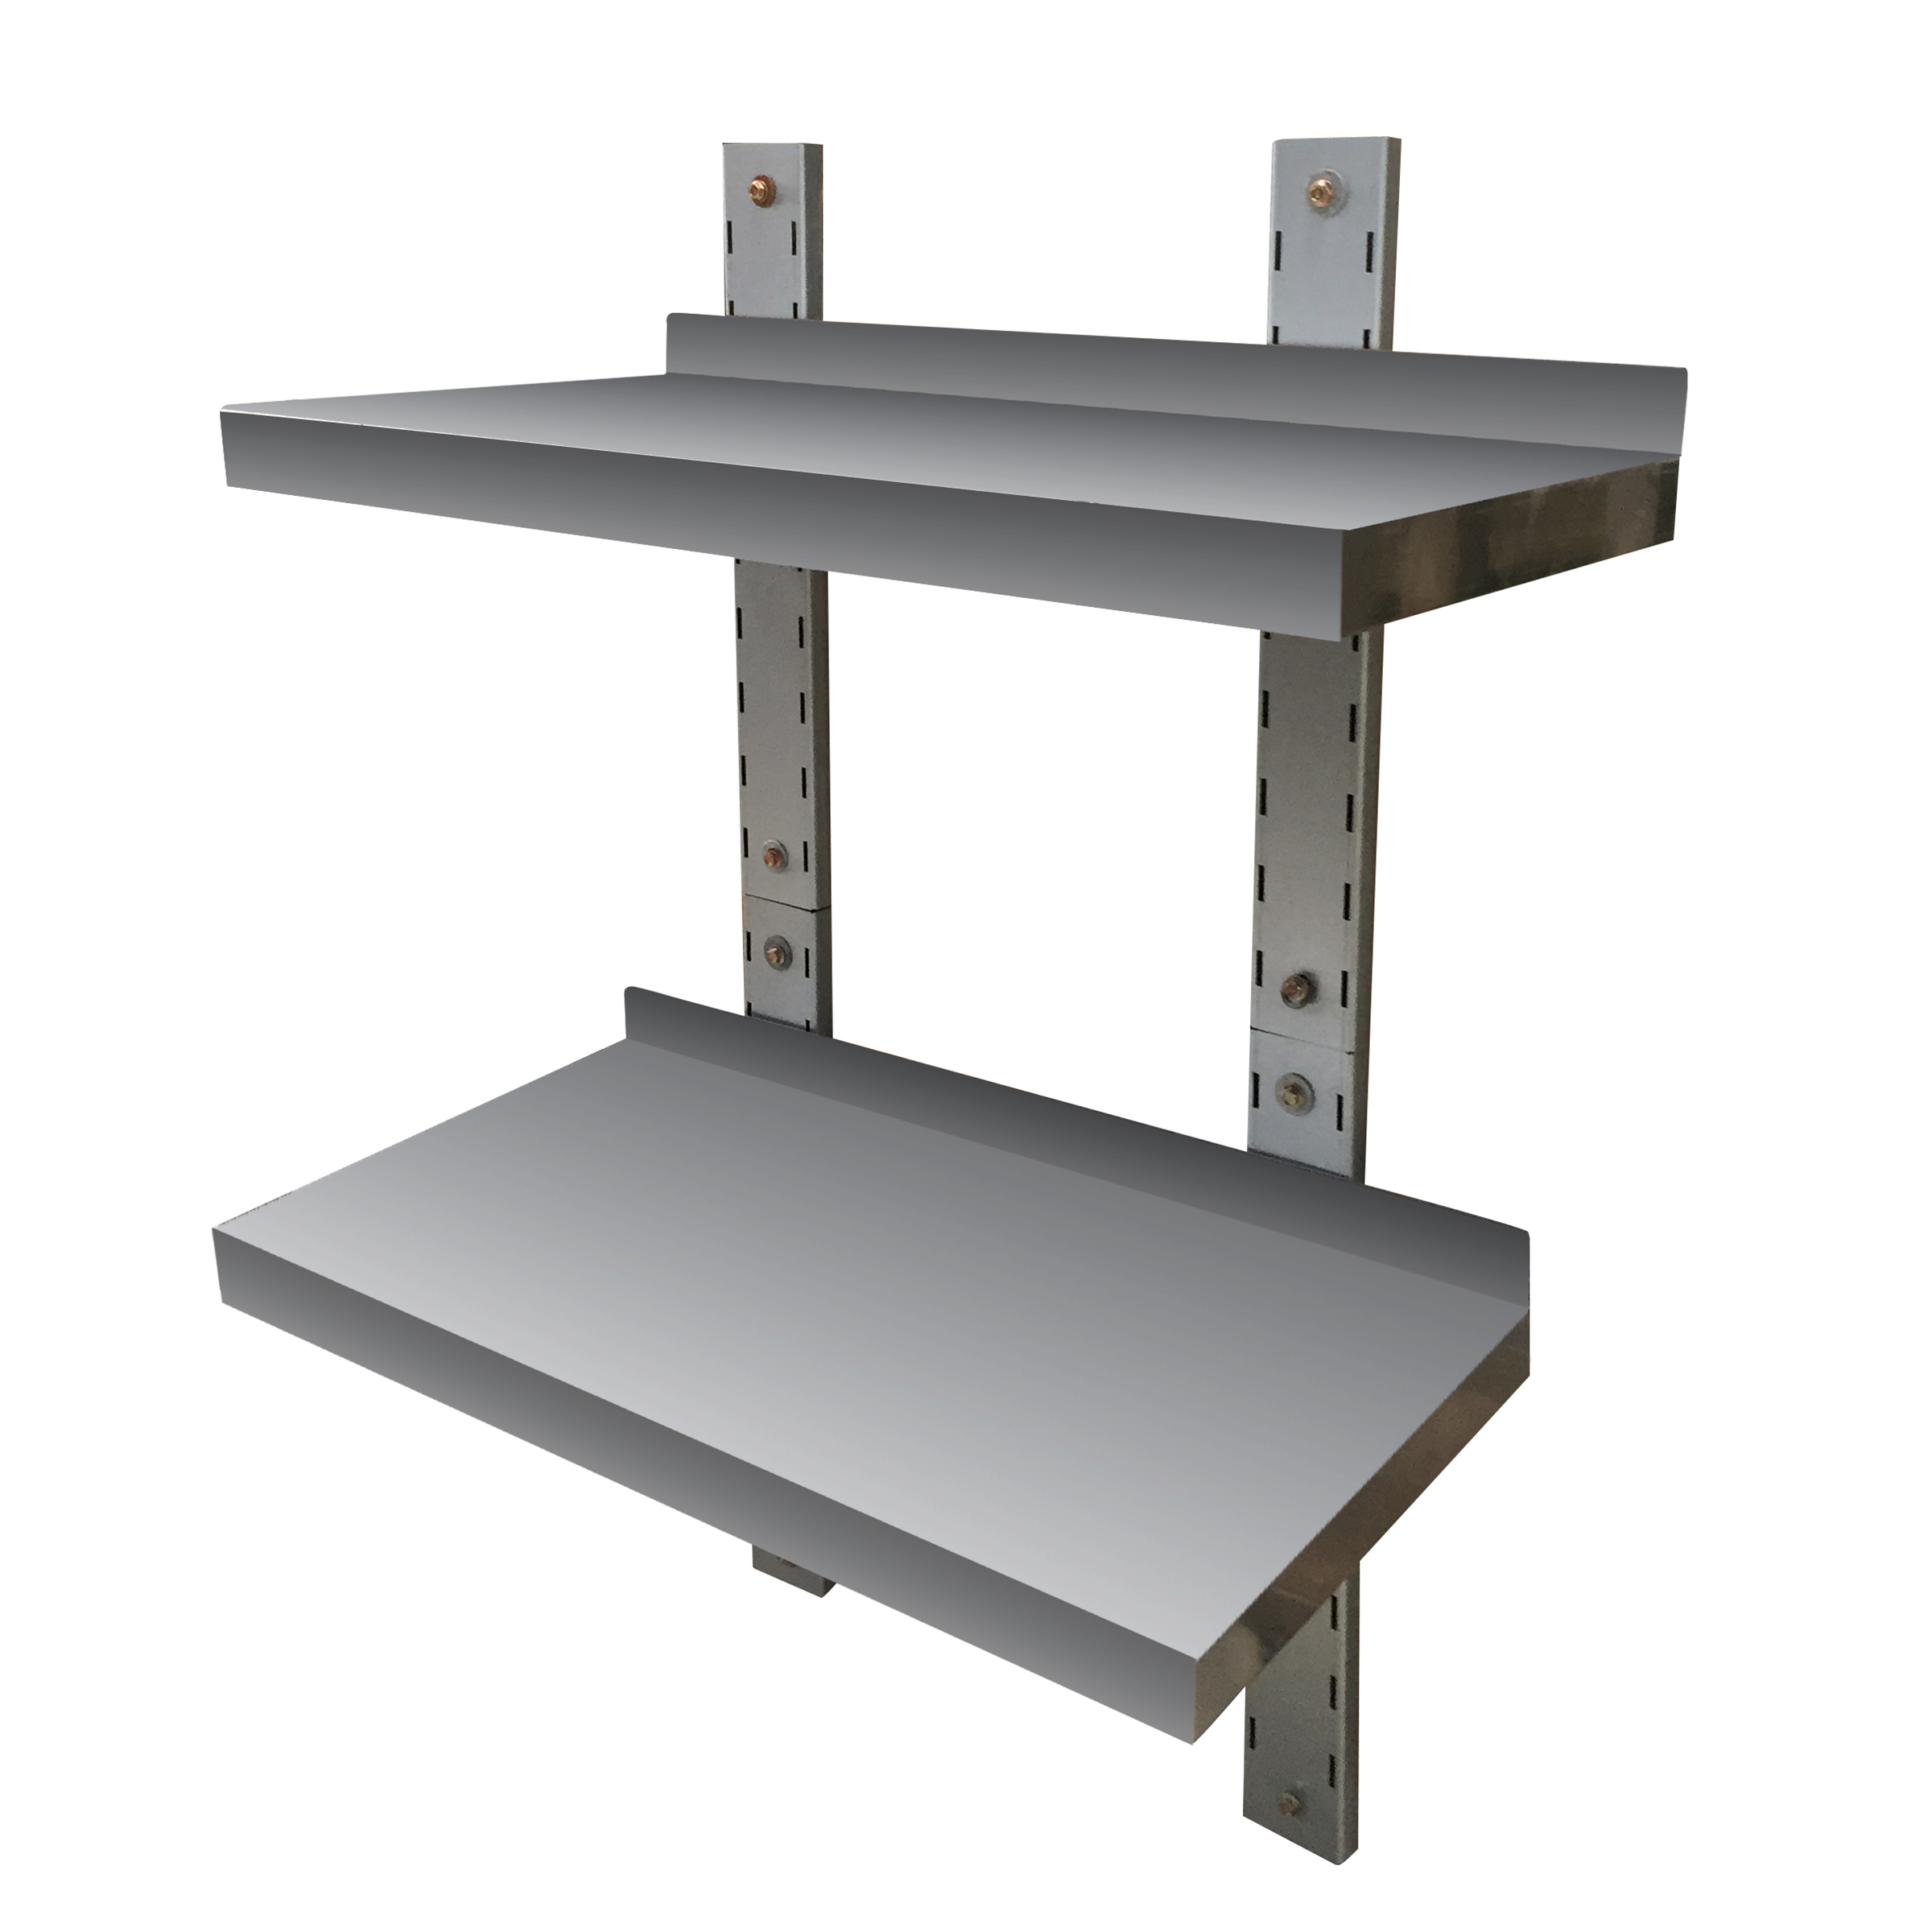 Stainless Steel Double Wall Mount Shelf